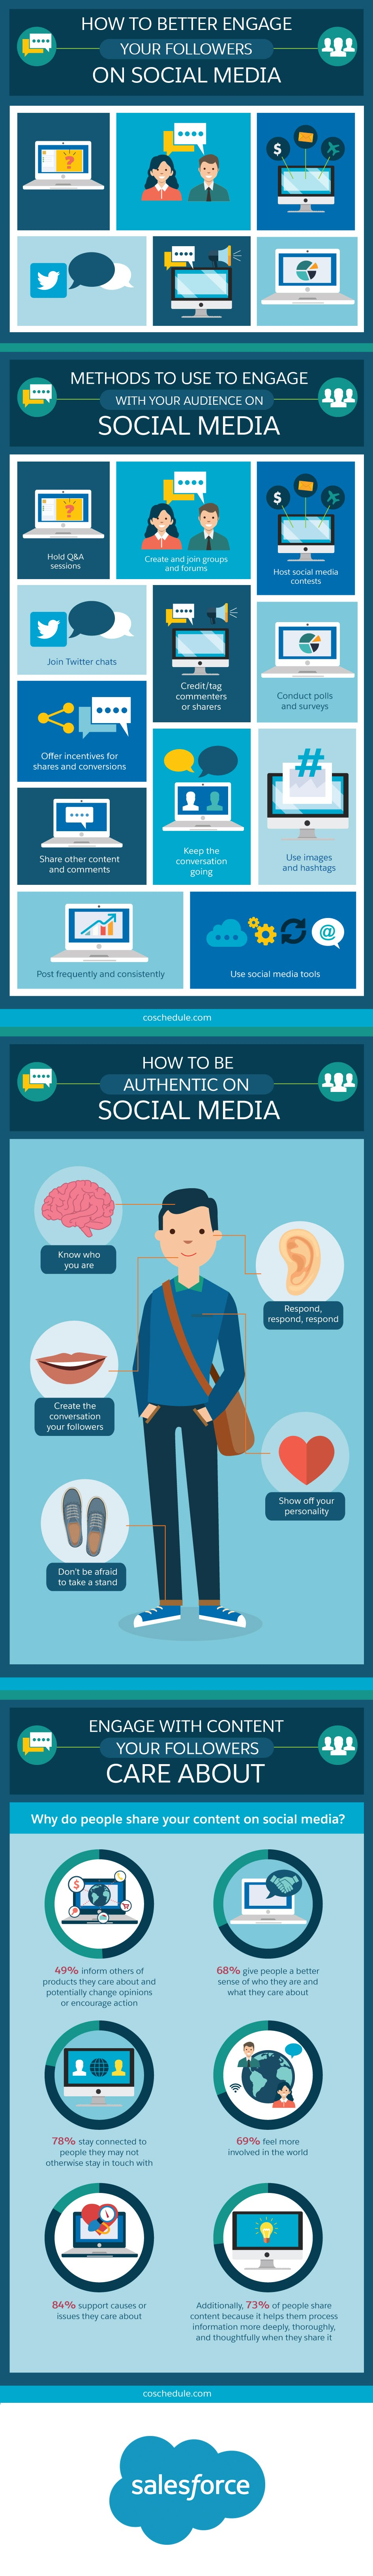 How to Better Engage Your Followers on Social Media - #infographic